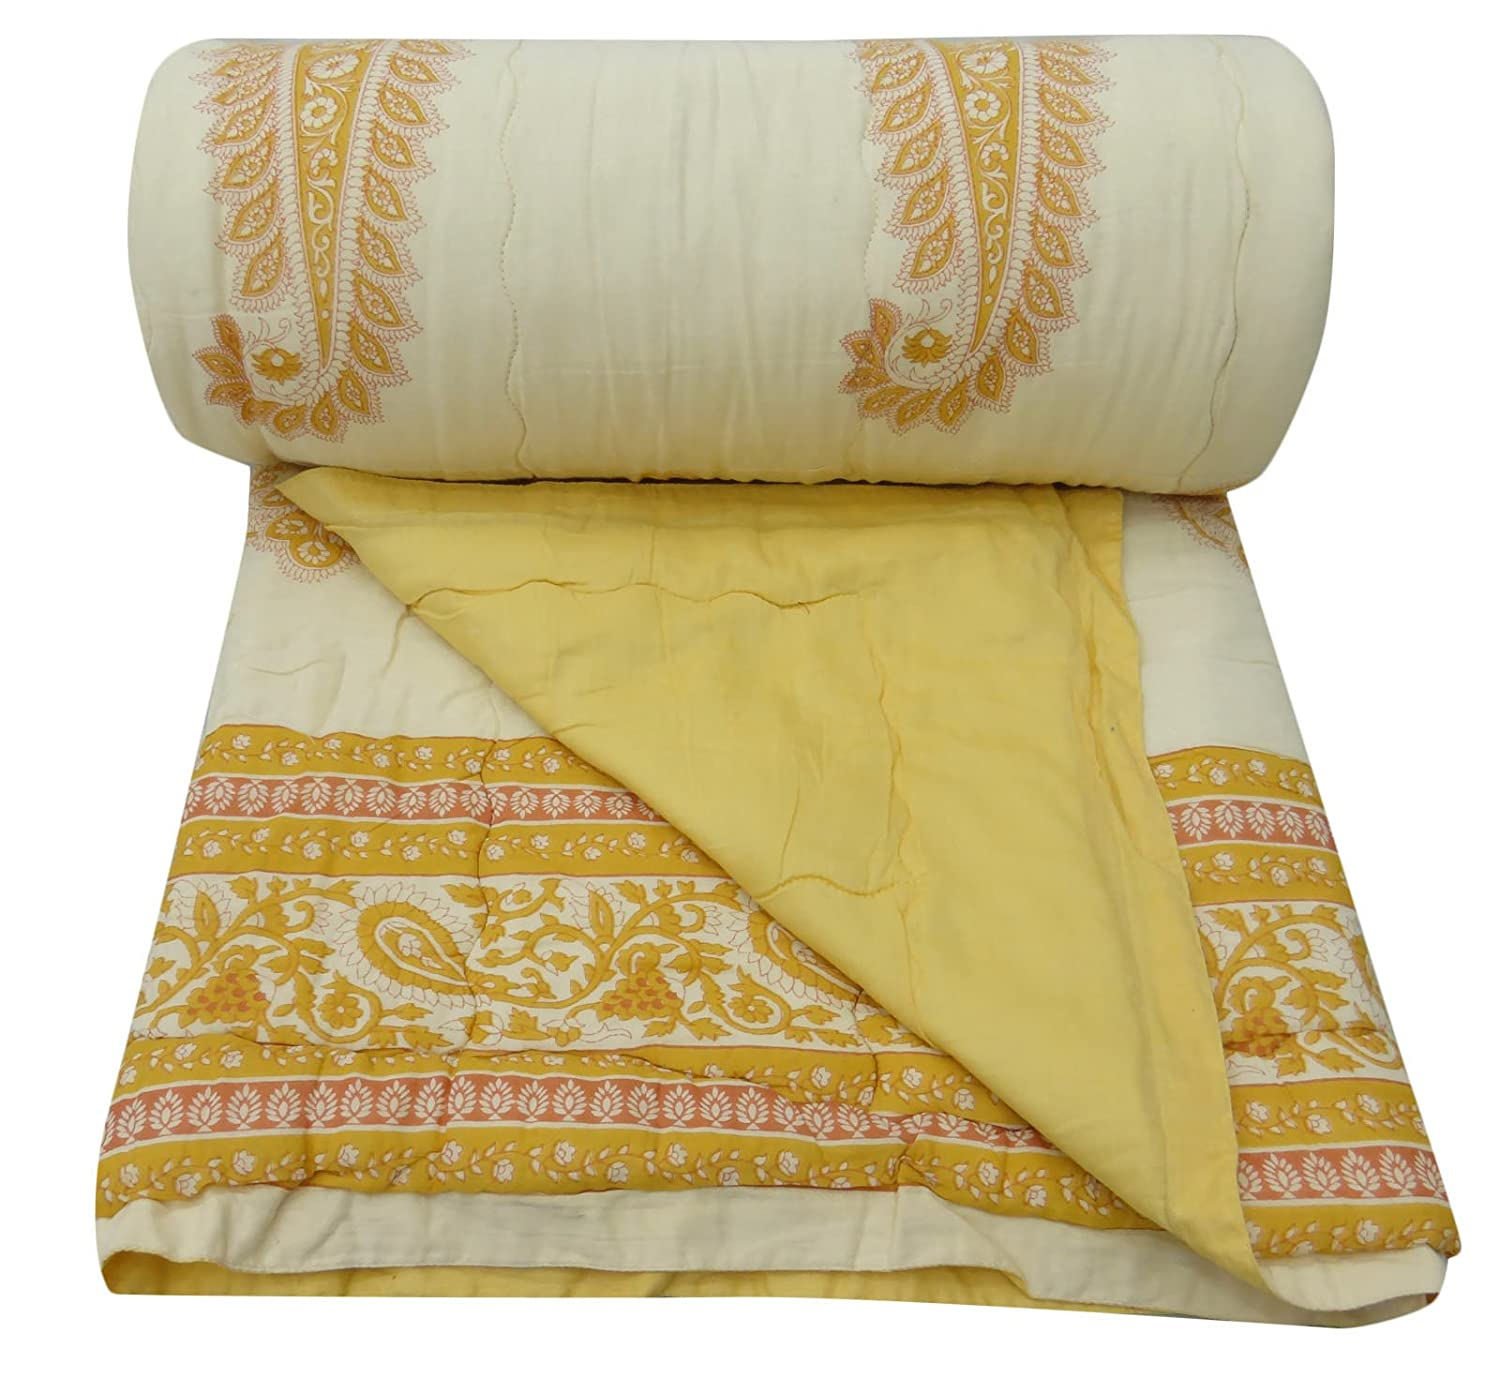 Twin Size Paisley Pattern Quilt Beige Cotton Filled Gudri Home Decor 56 x 87 BeyondLiving